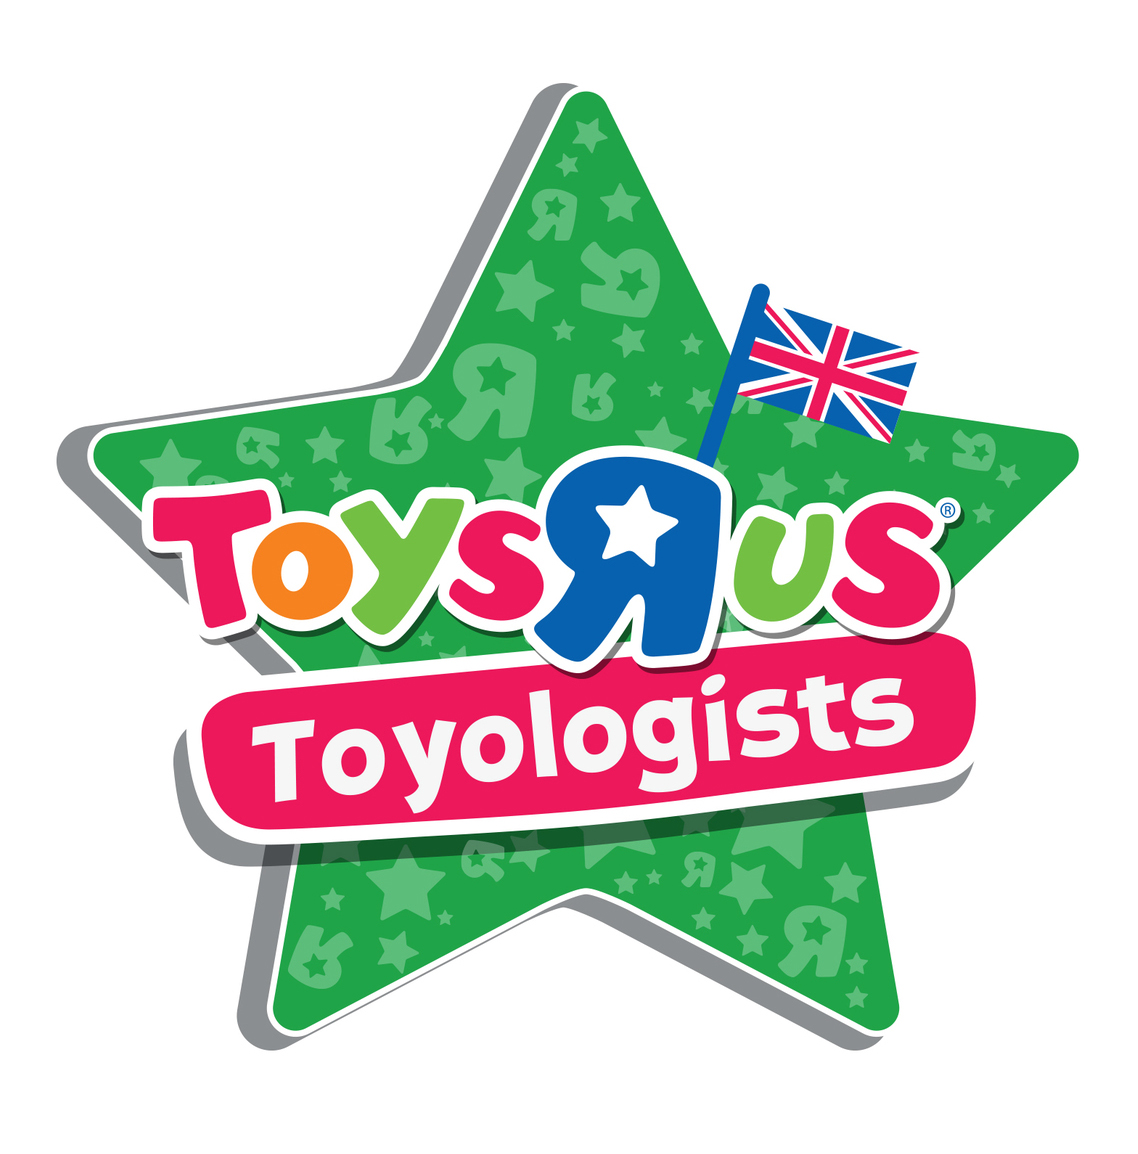 Toyologists